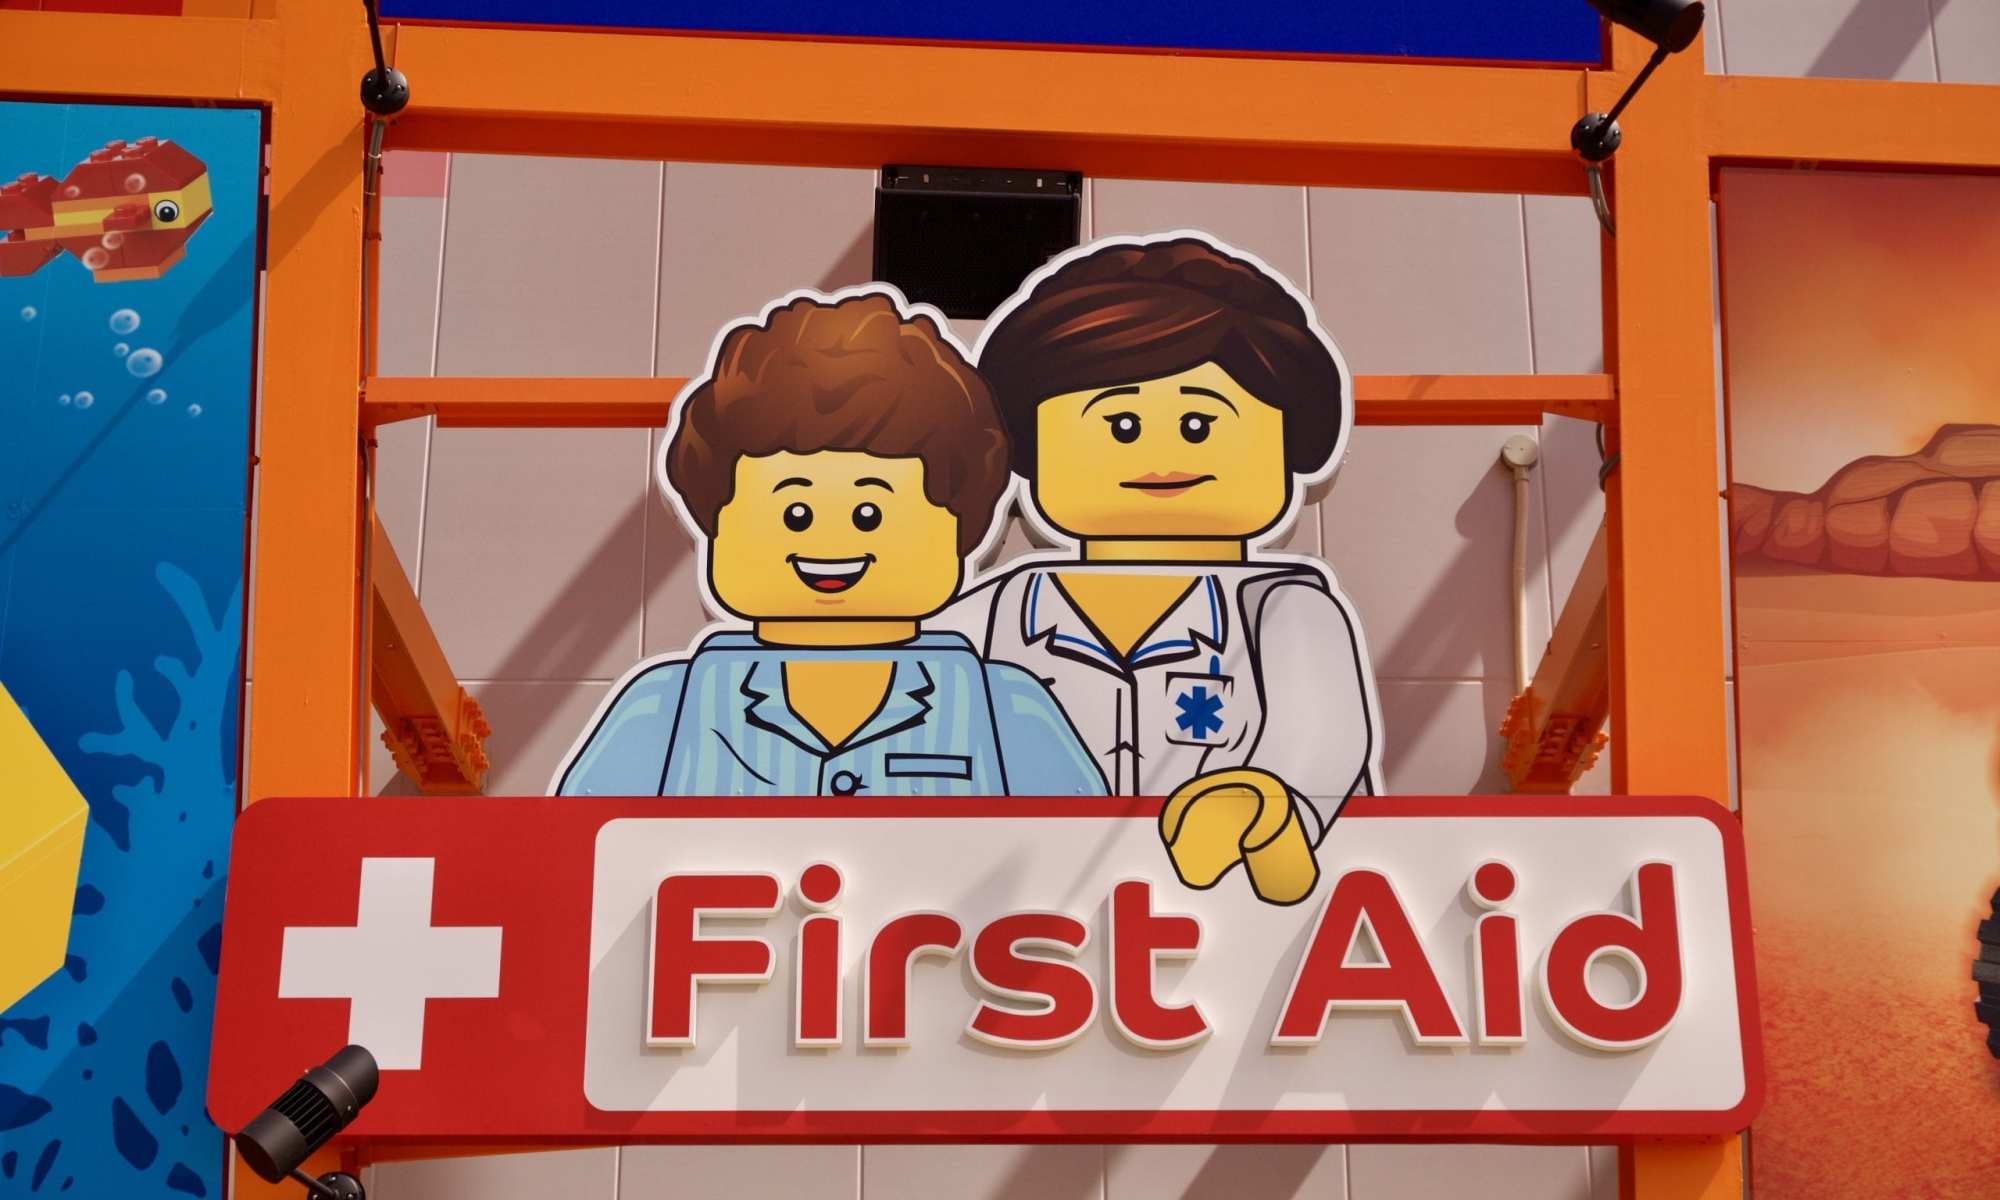 an image of lego characters as doctors with first Aid written